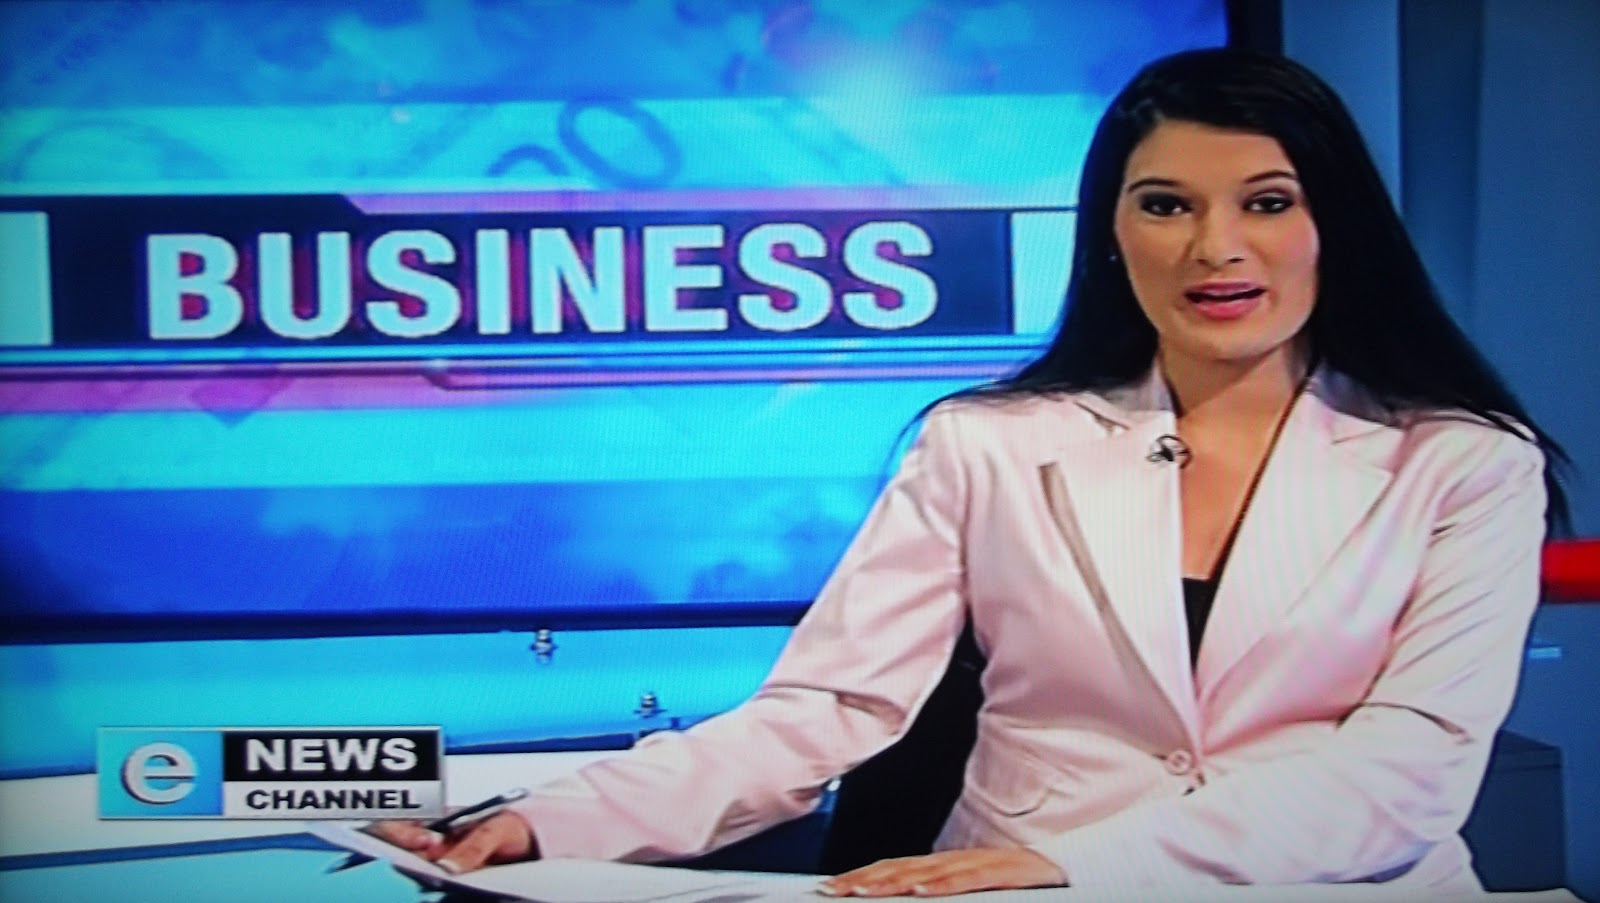 TV with Thinus: BREAKING. Eleni Giokos joins the eNews Channel as financial reporter; dumps CNBC ...